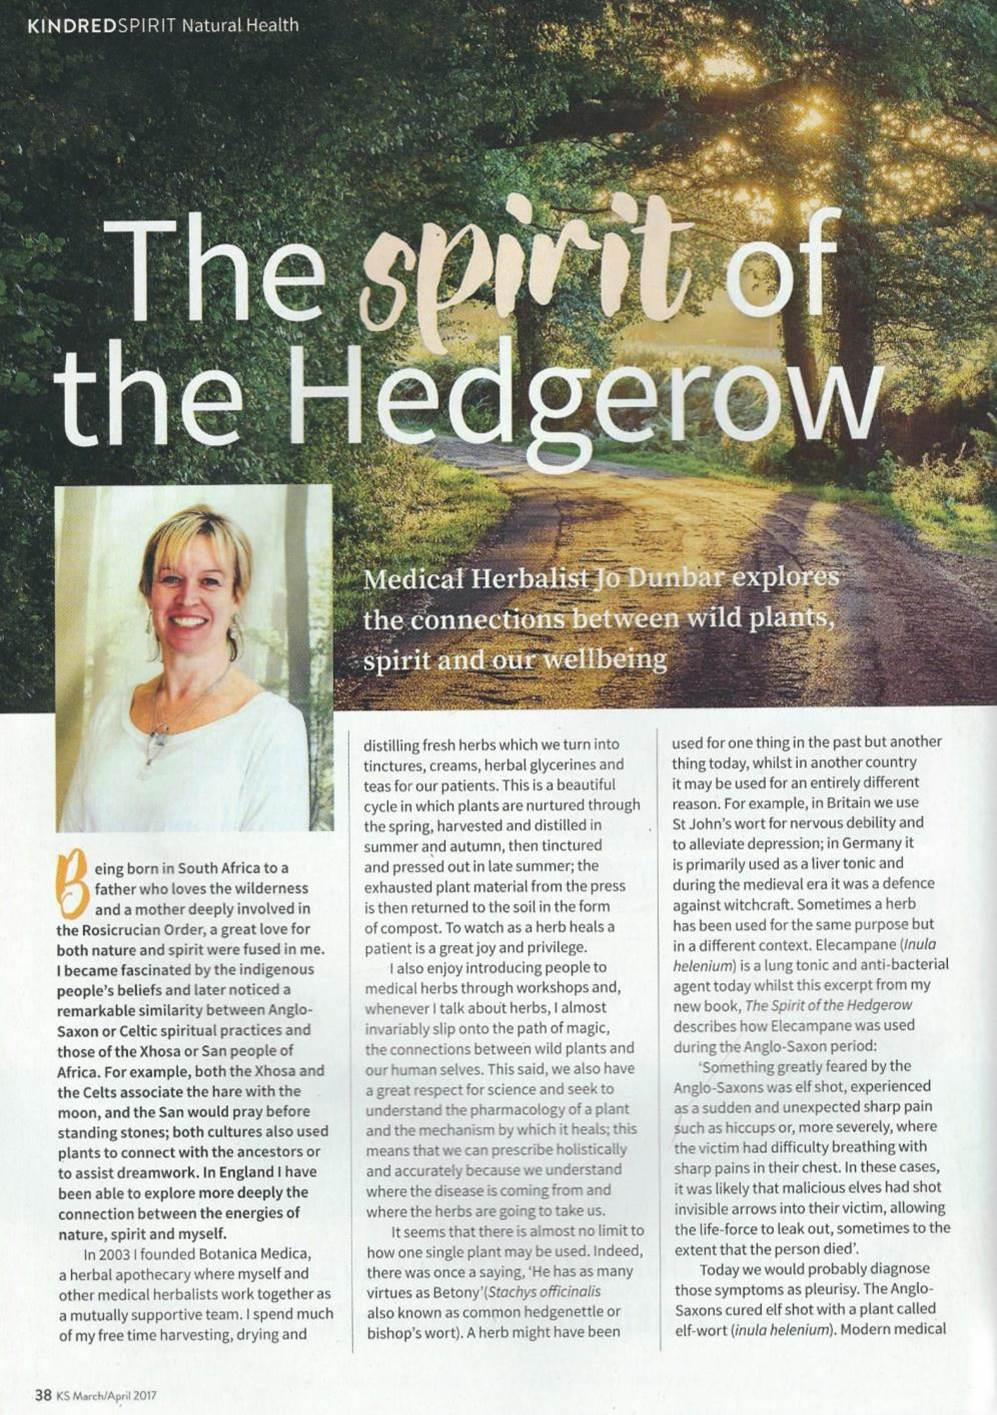 The Spirit of the Hedgerow article featured in Kindred Spirit Magazine March/April 2017